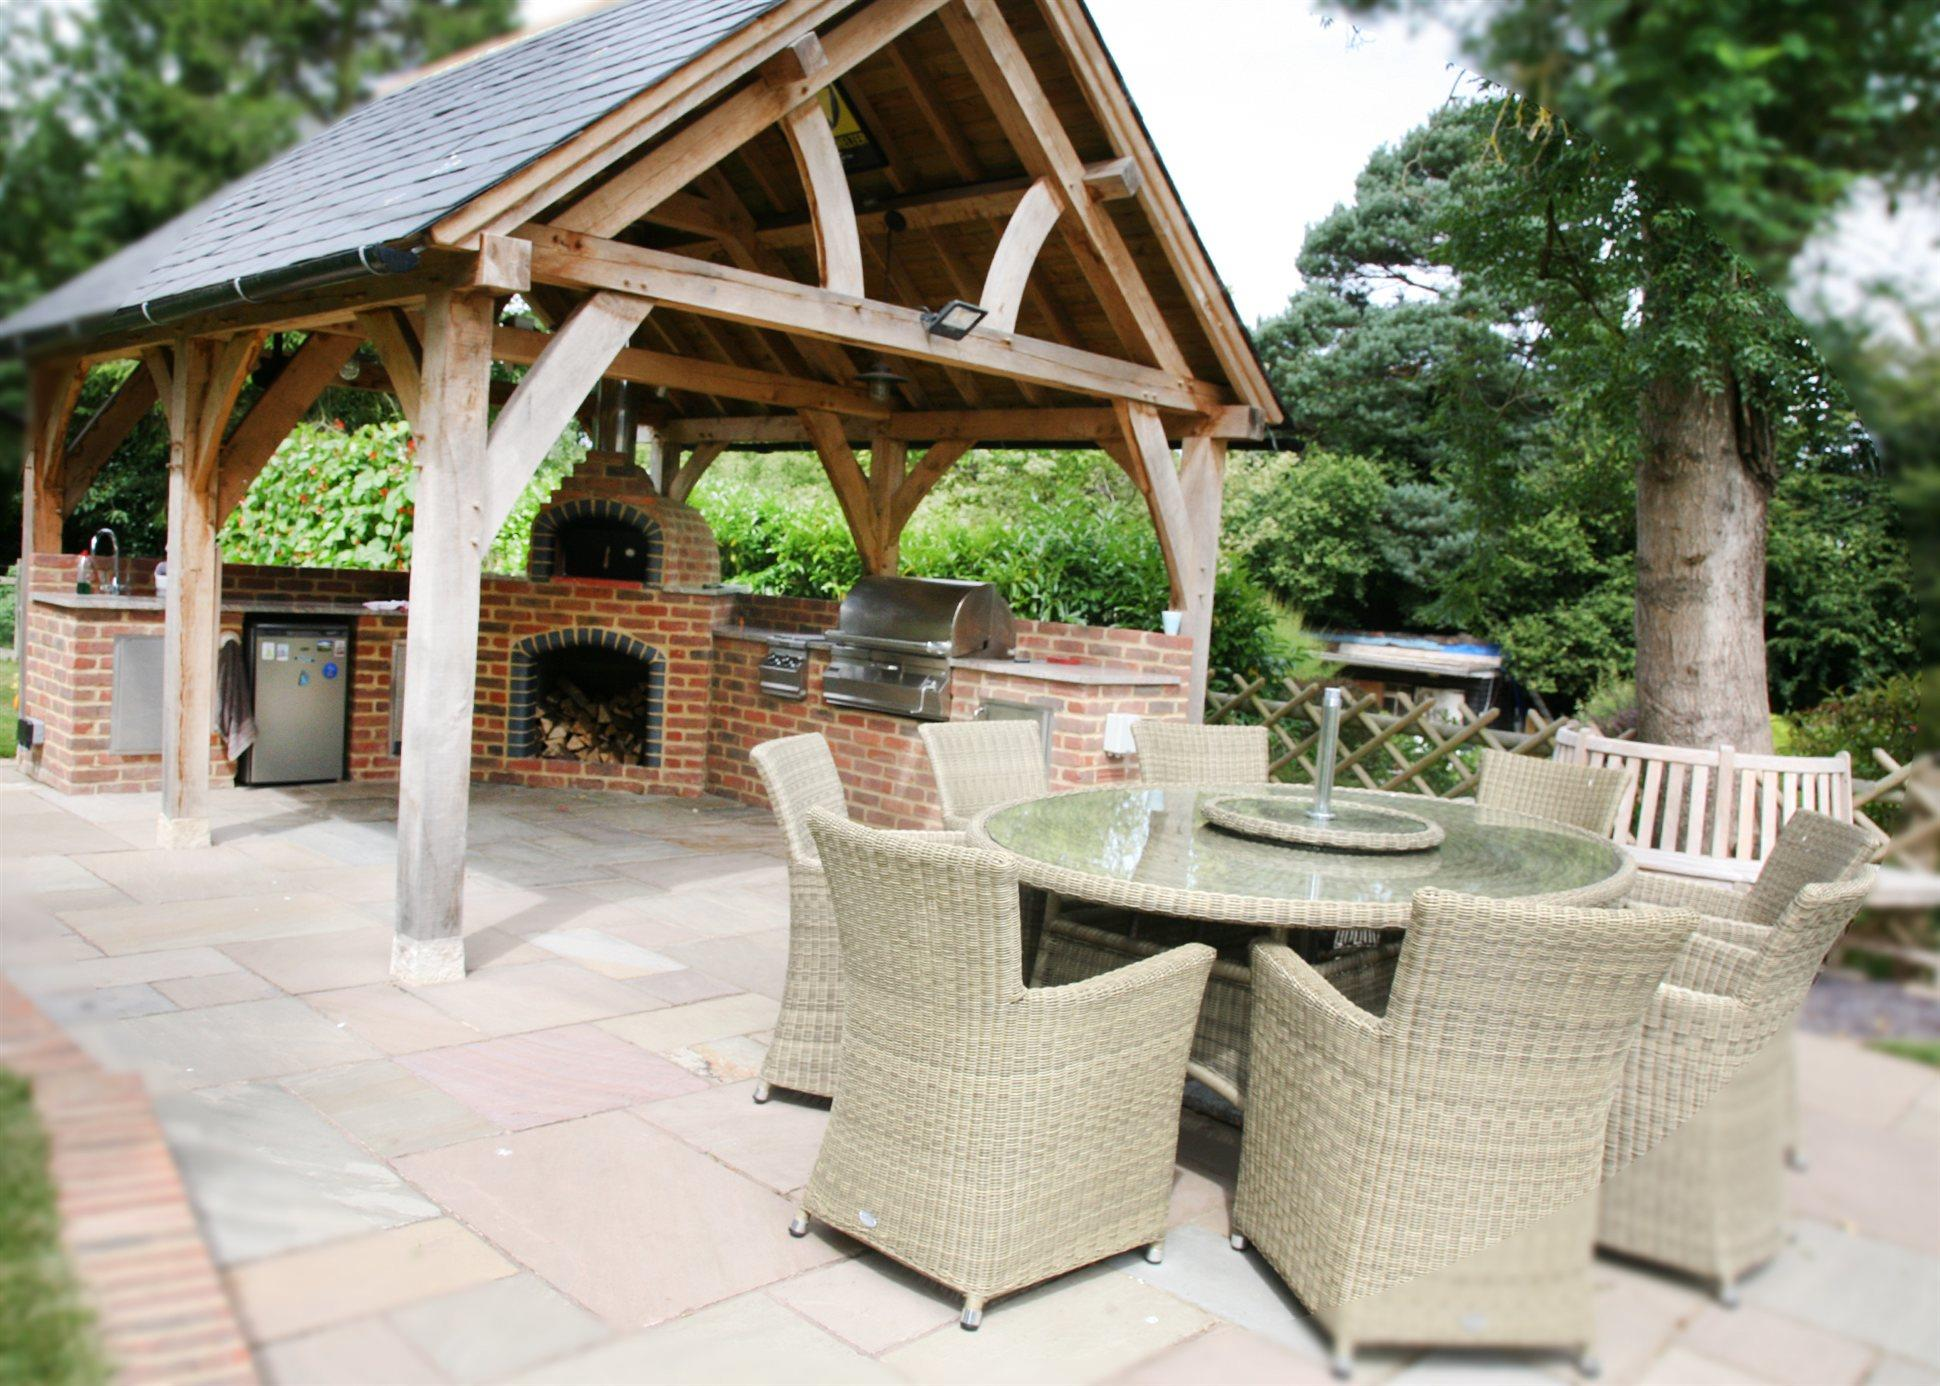 The Radcliffe Outdoor Living Gazebo